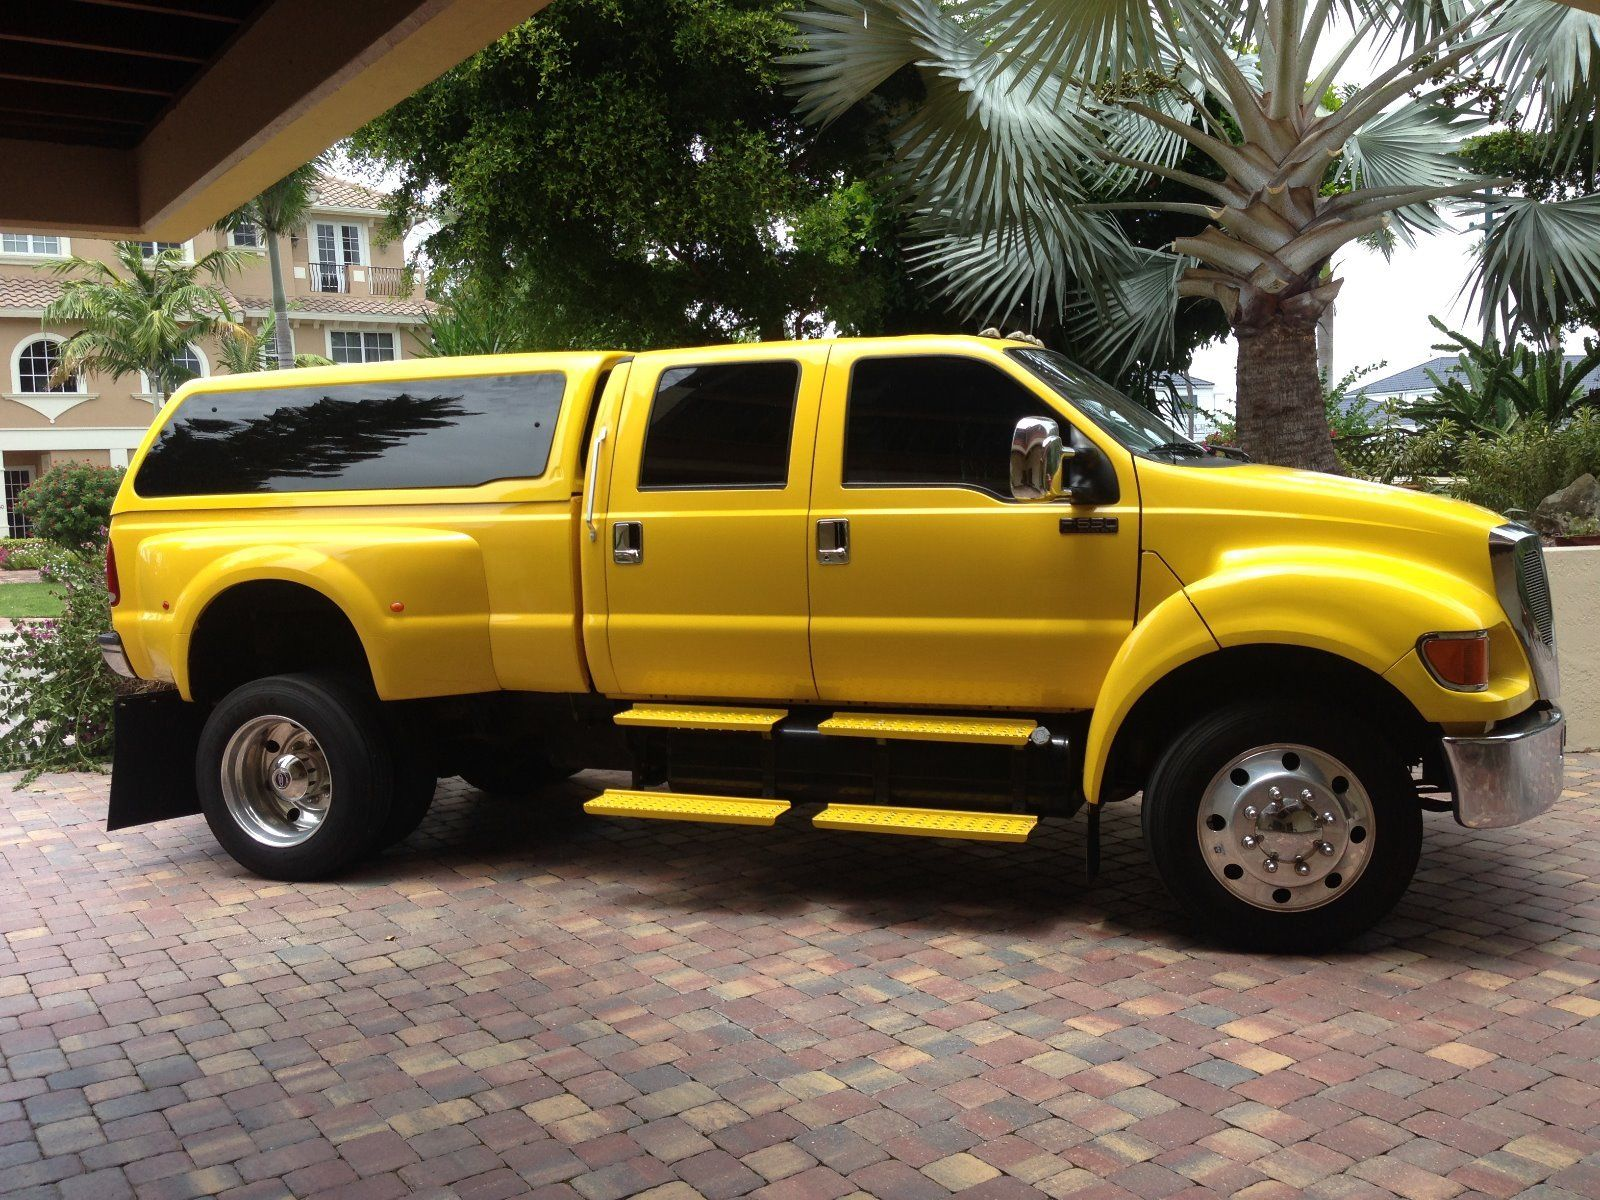 2005 ford f650 custom monster truck for sale. Black Bedroom Furniture Sets. Home Design Ideas